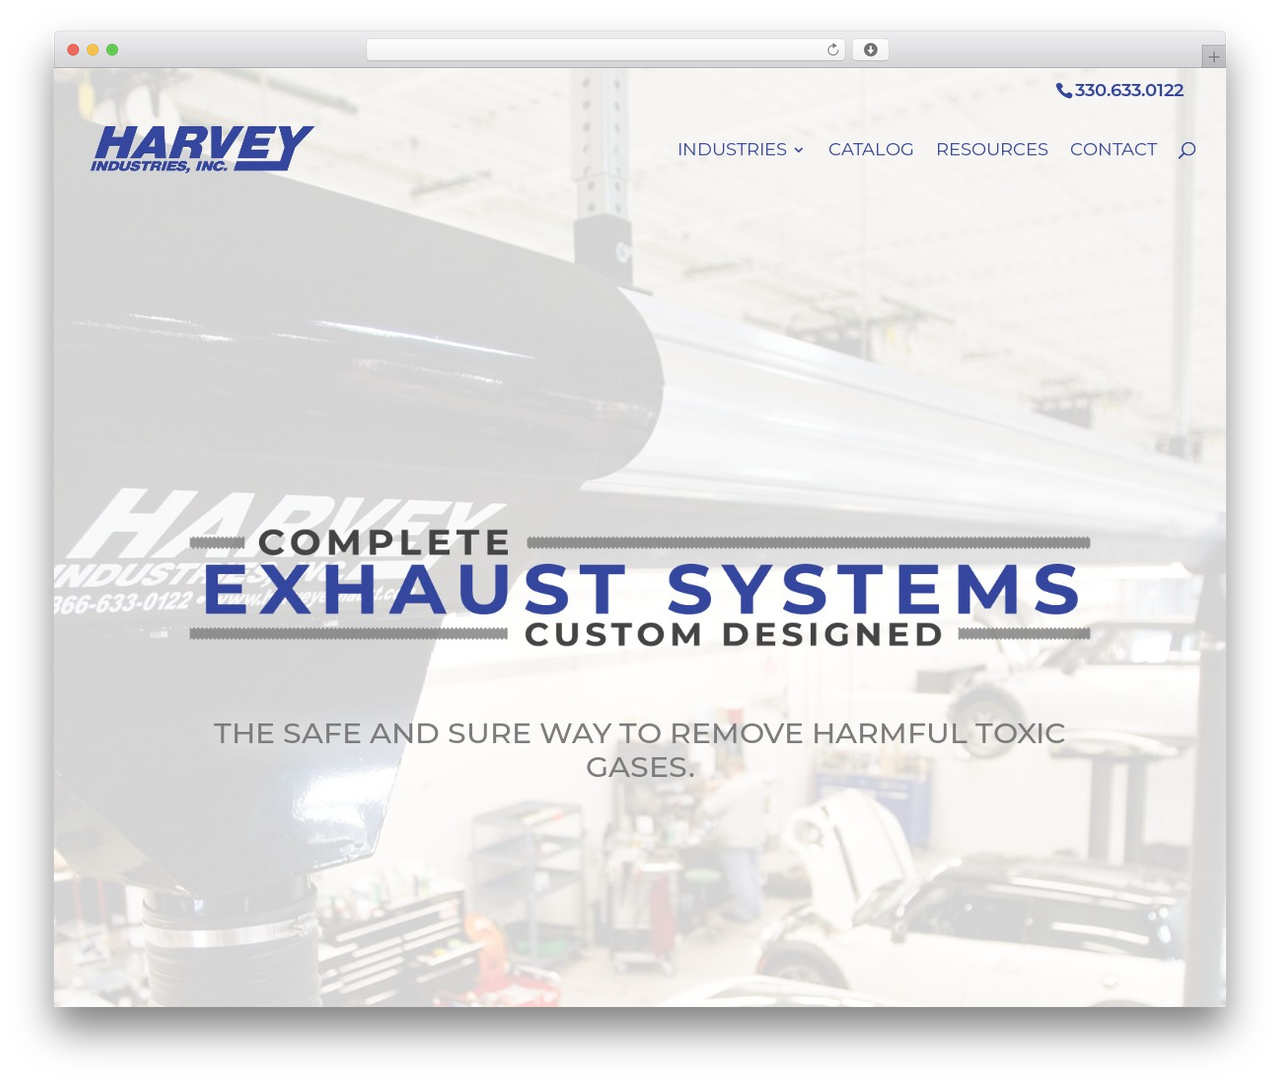 WordPress theme Divi - harveyexhaust.com